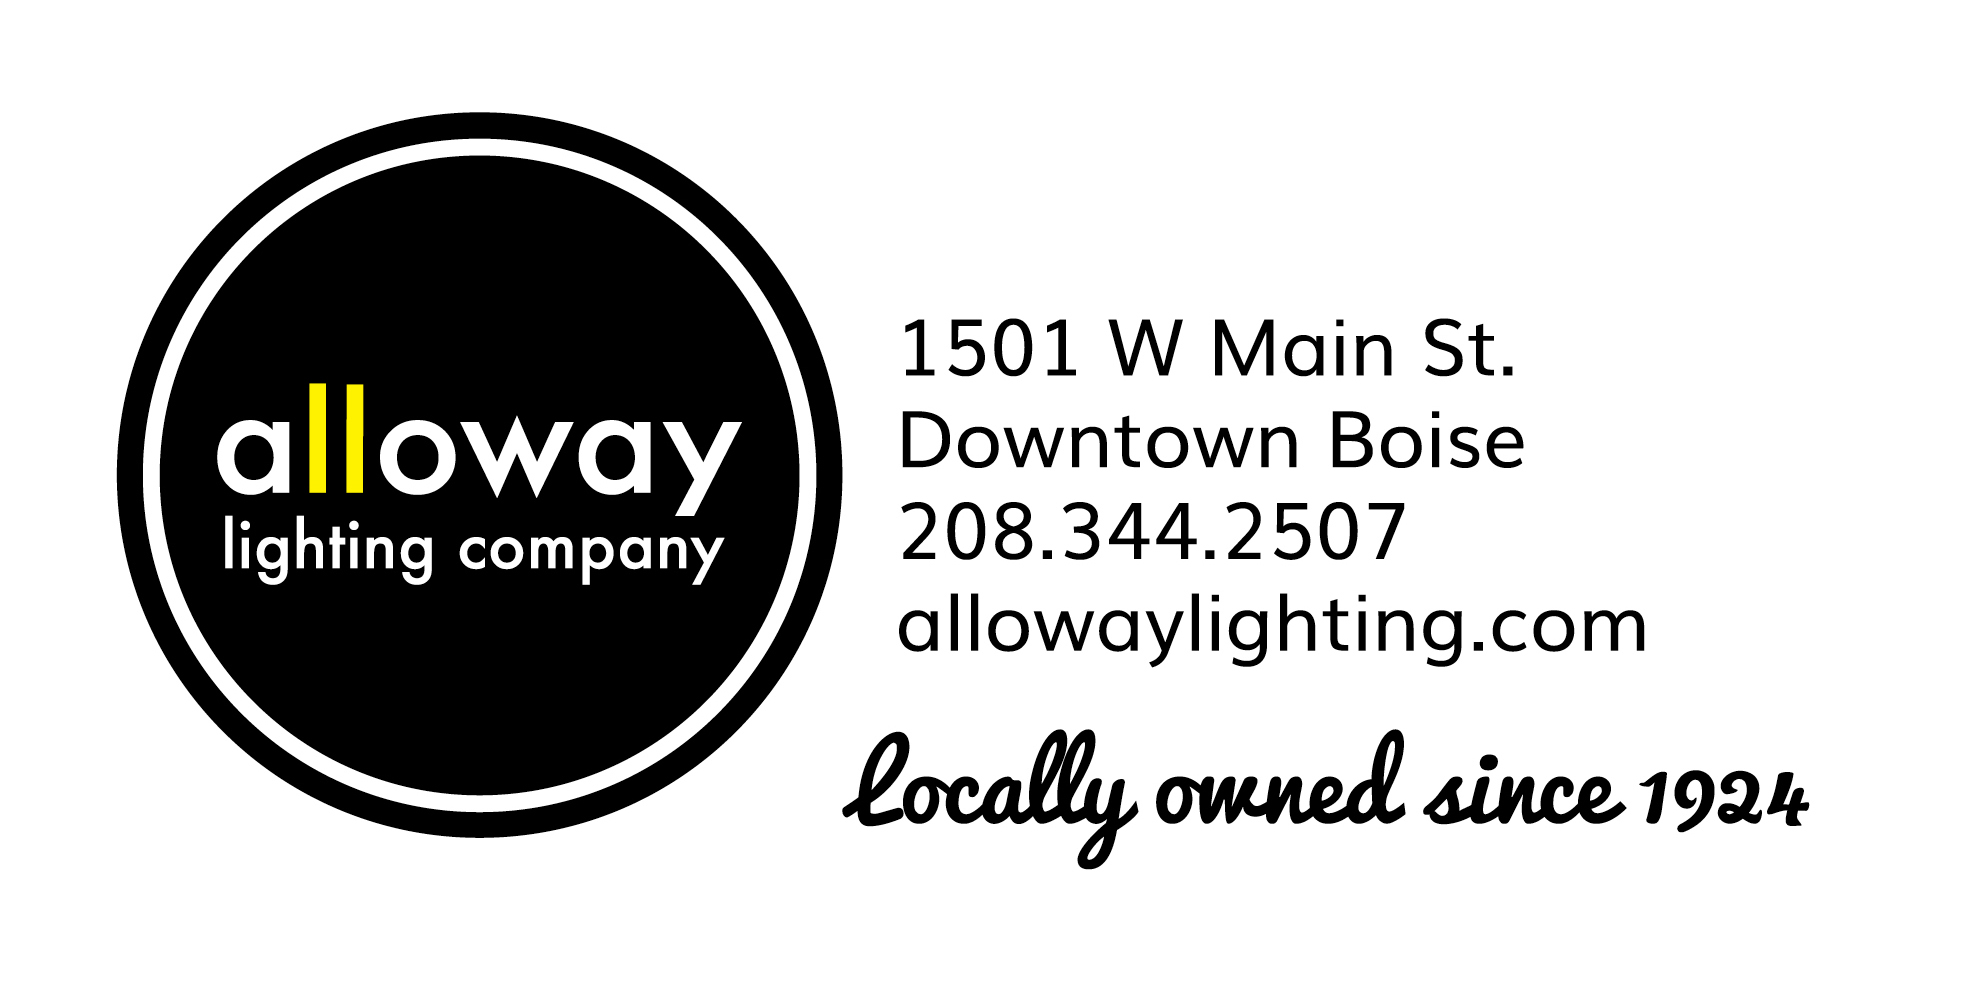 Alloway Lighting Co